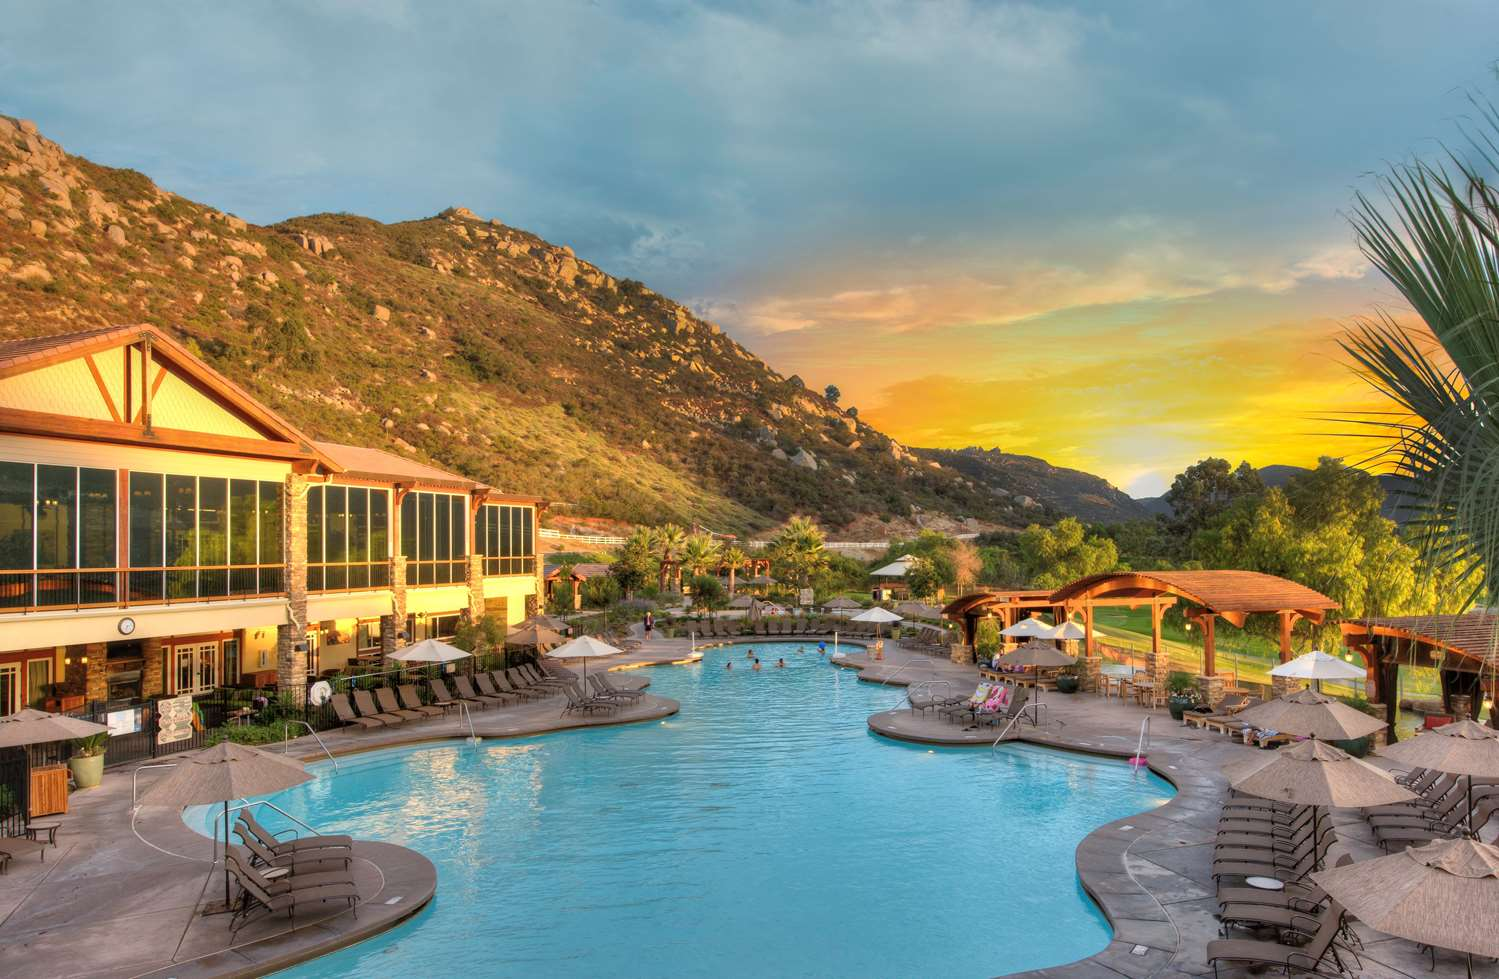 Welk Resort Escondido Ca See Discounts